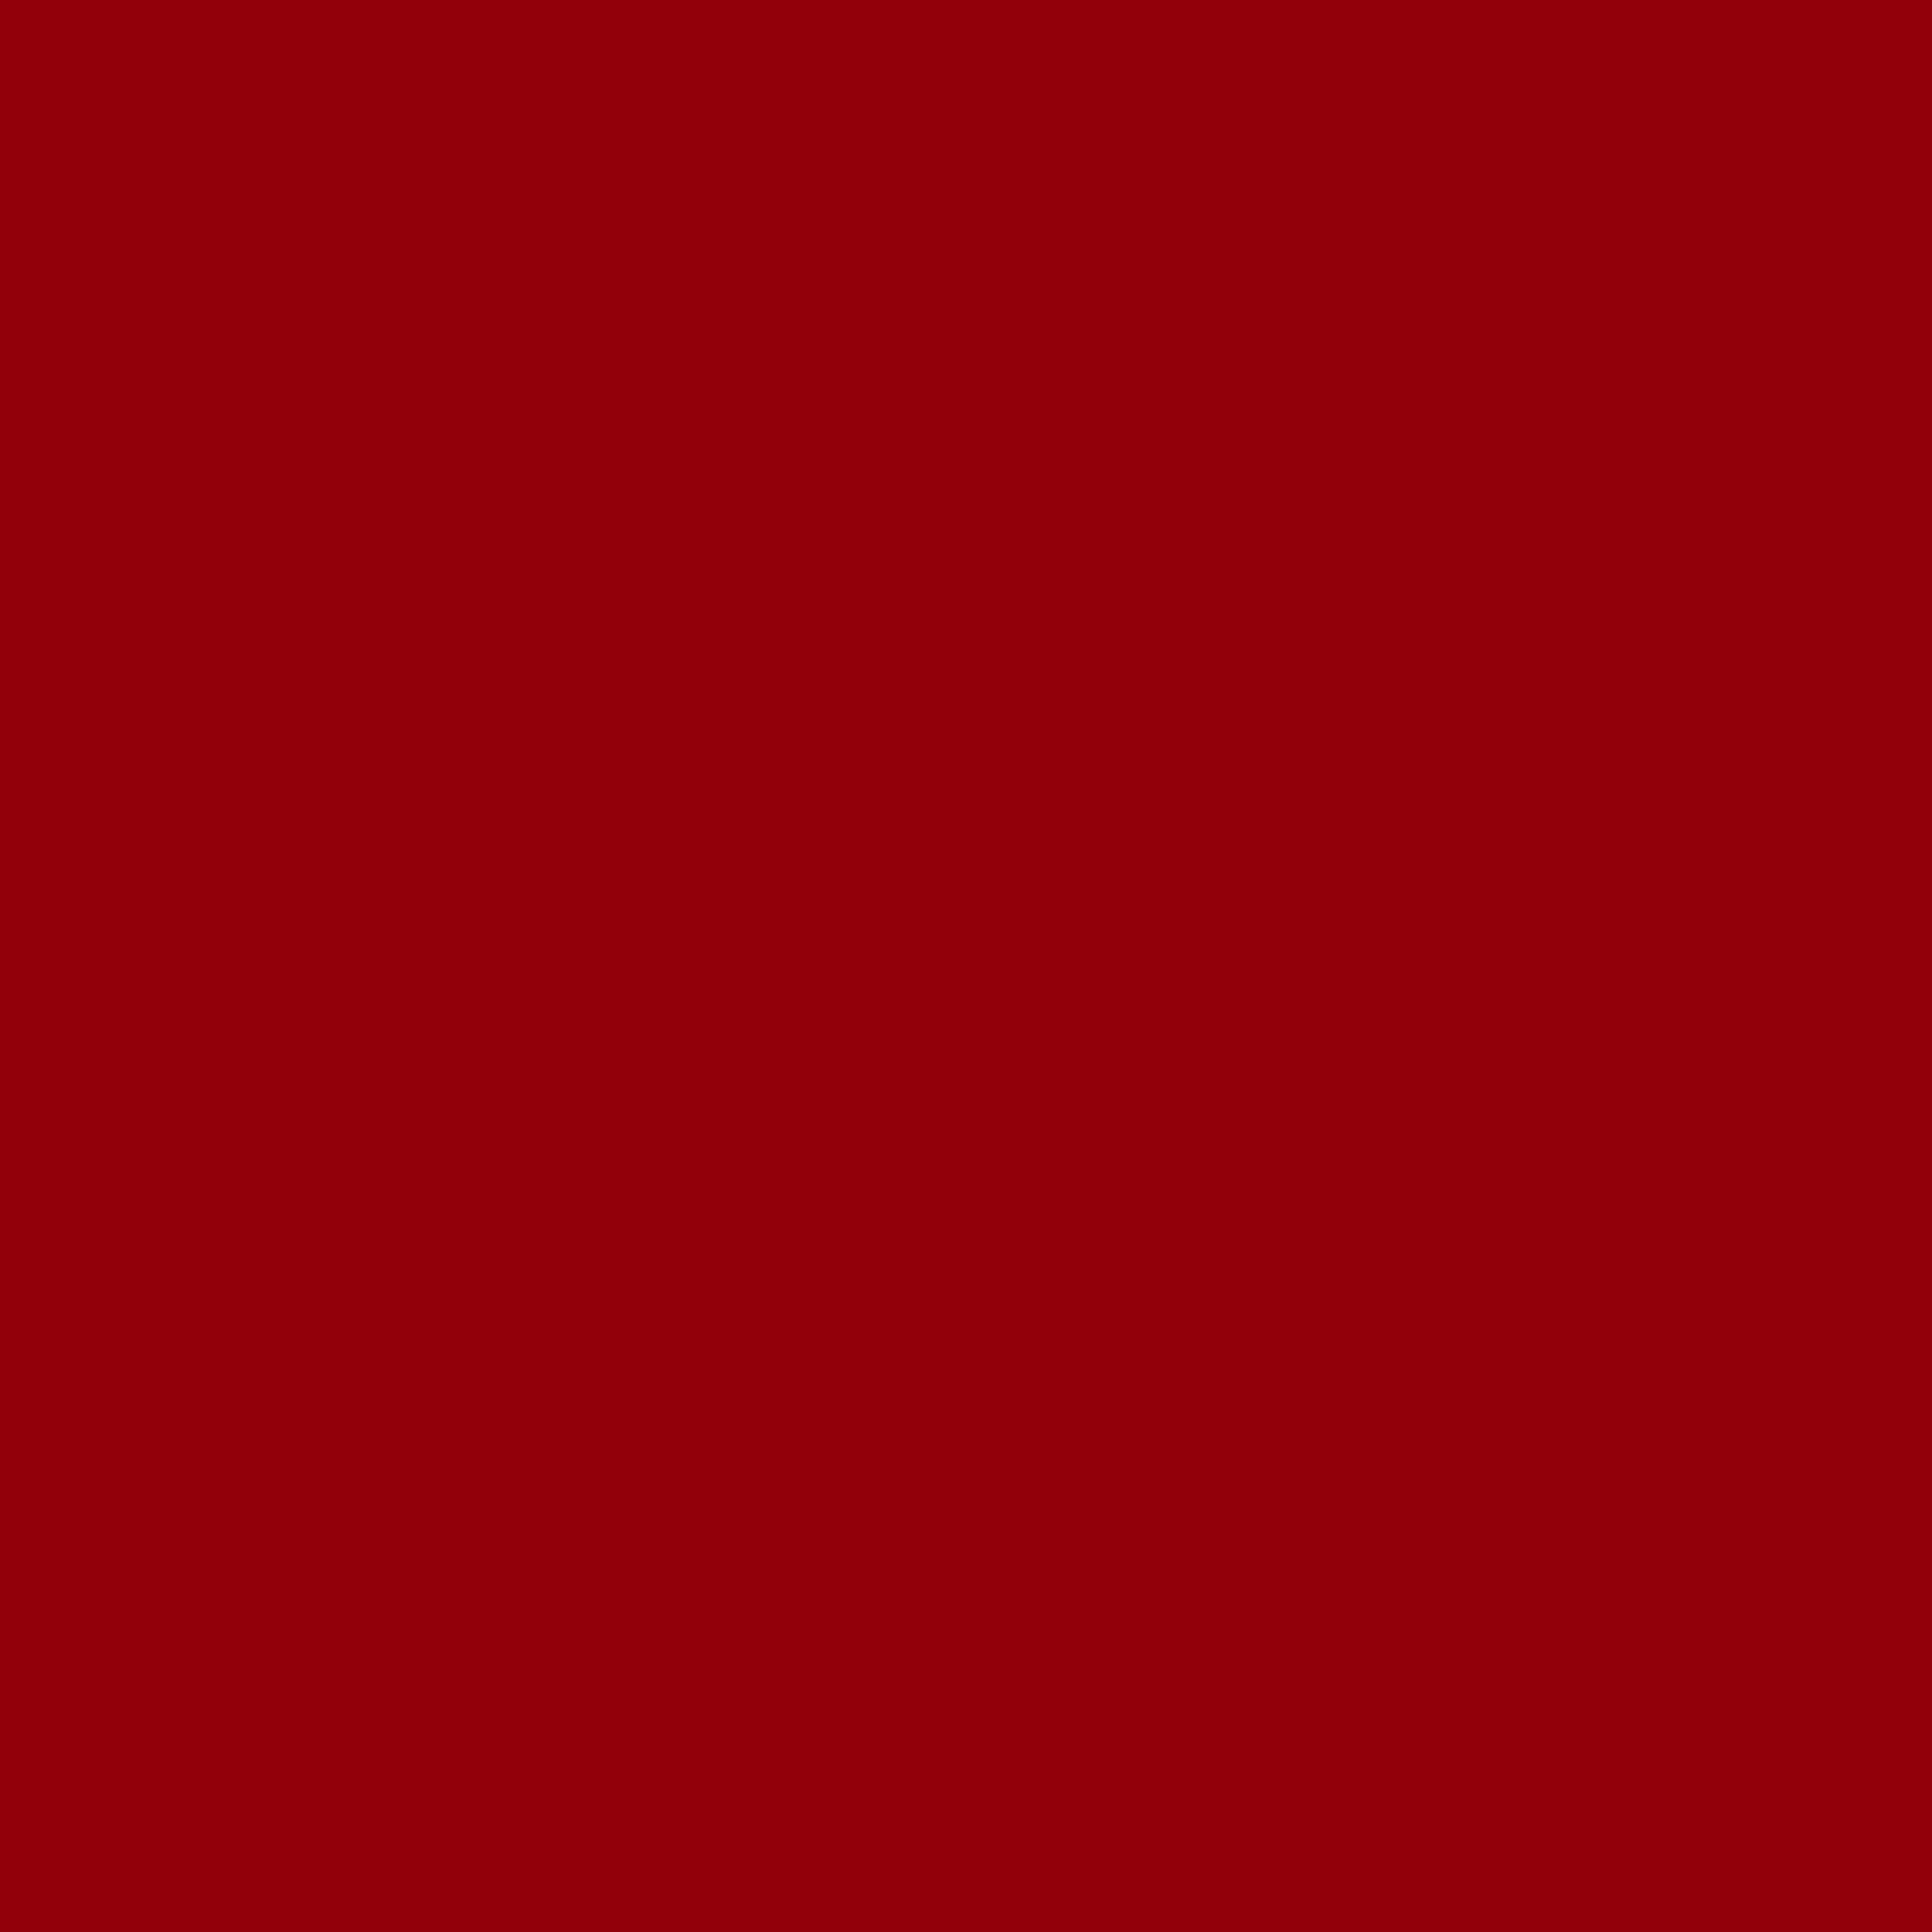 3600x3600 Sangria Solid Color Background